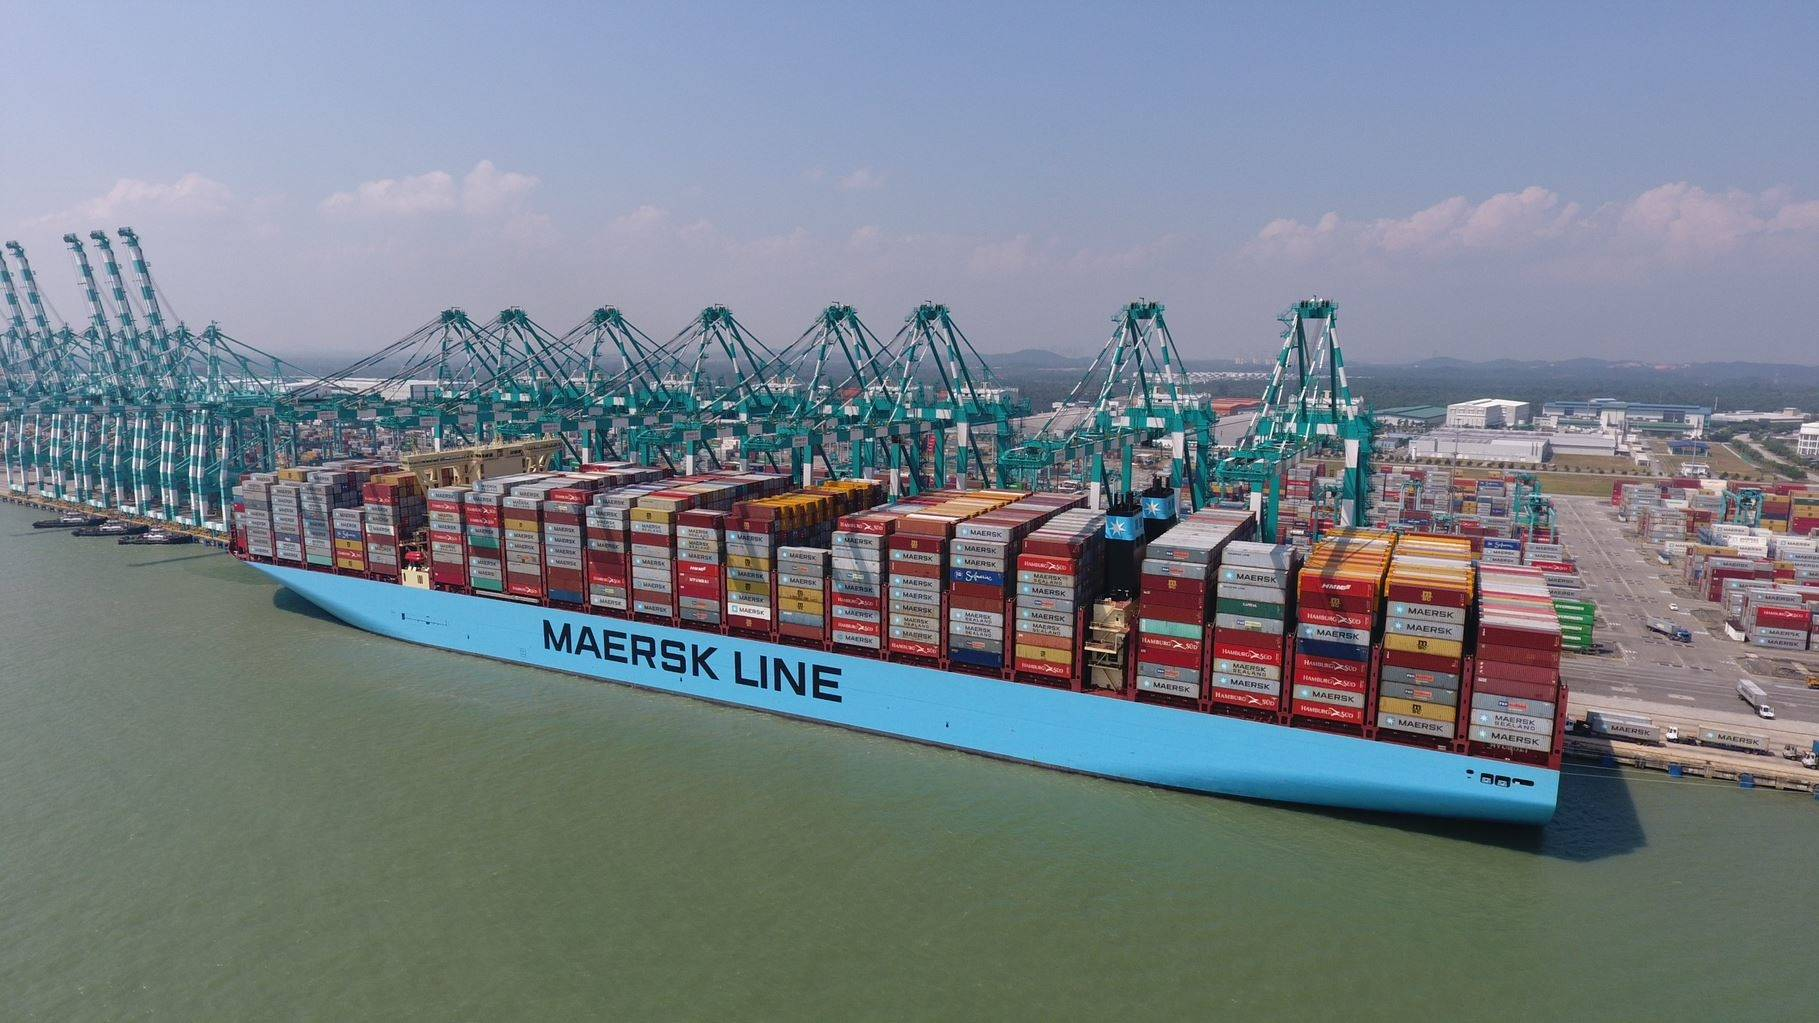 Mumbai Maersk sets world record by loading 19,038 TEUs